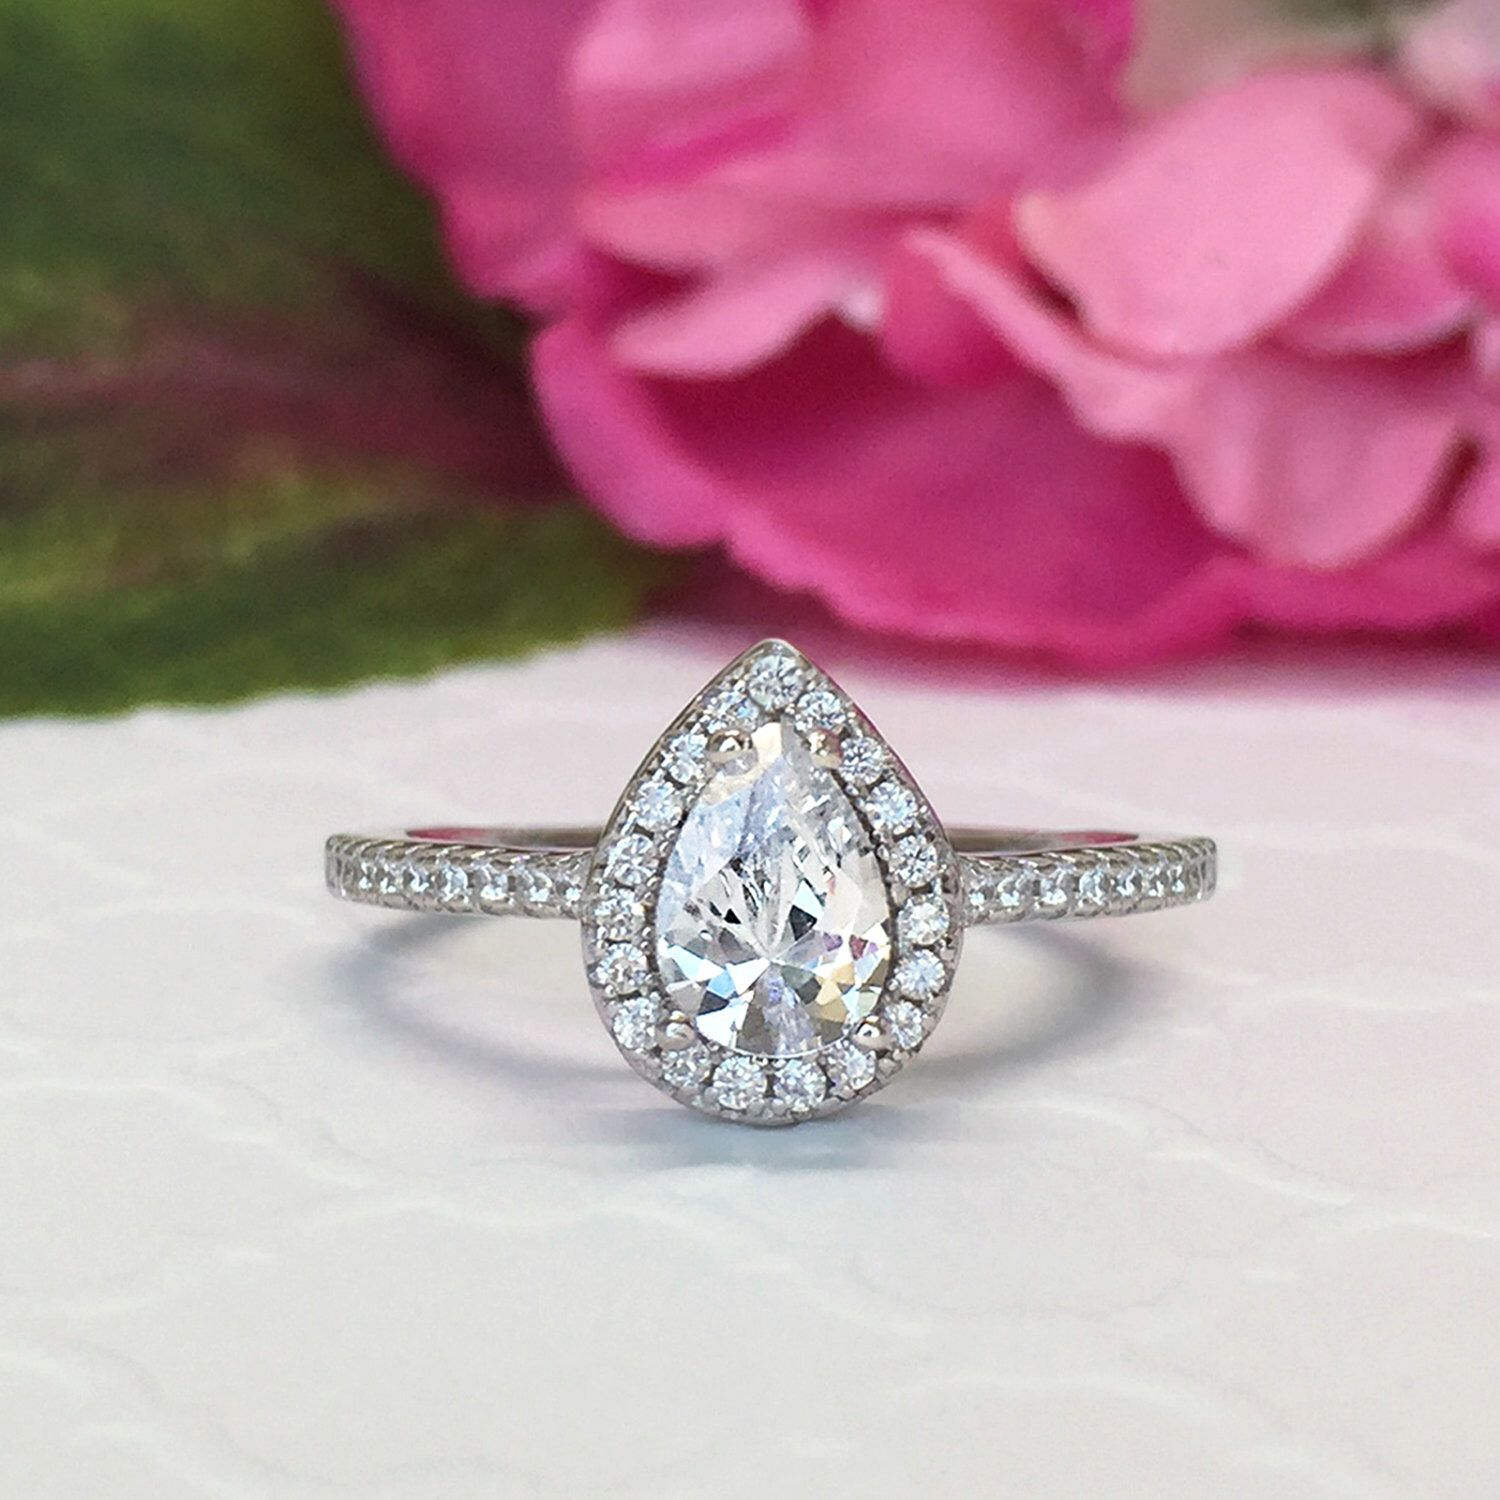 Pin by Best Style Jewellery on Dream Ring | Pinterest | Halo ...